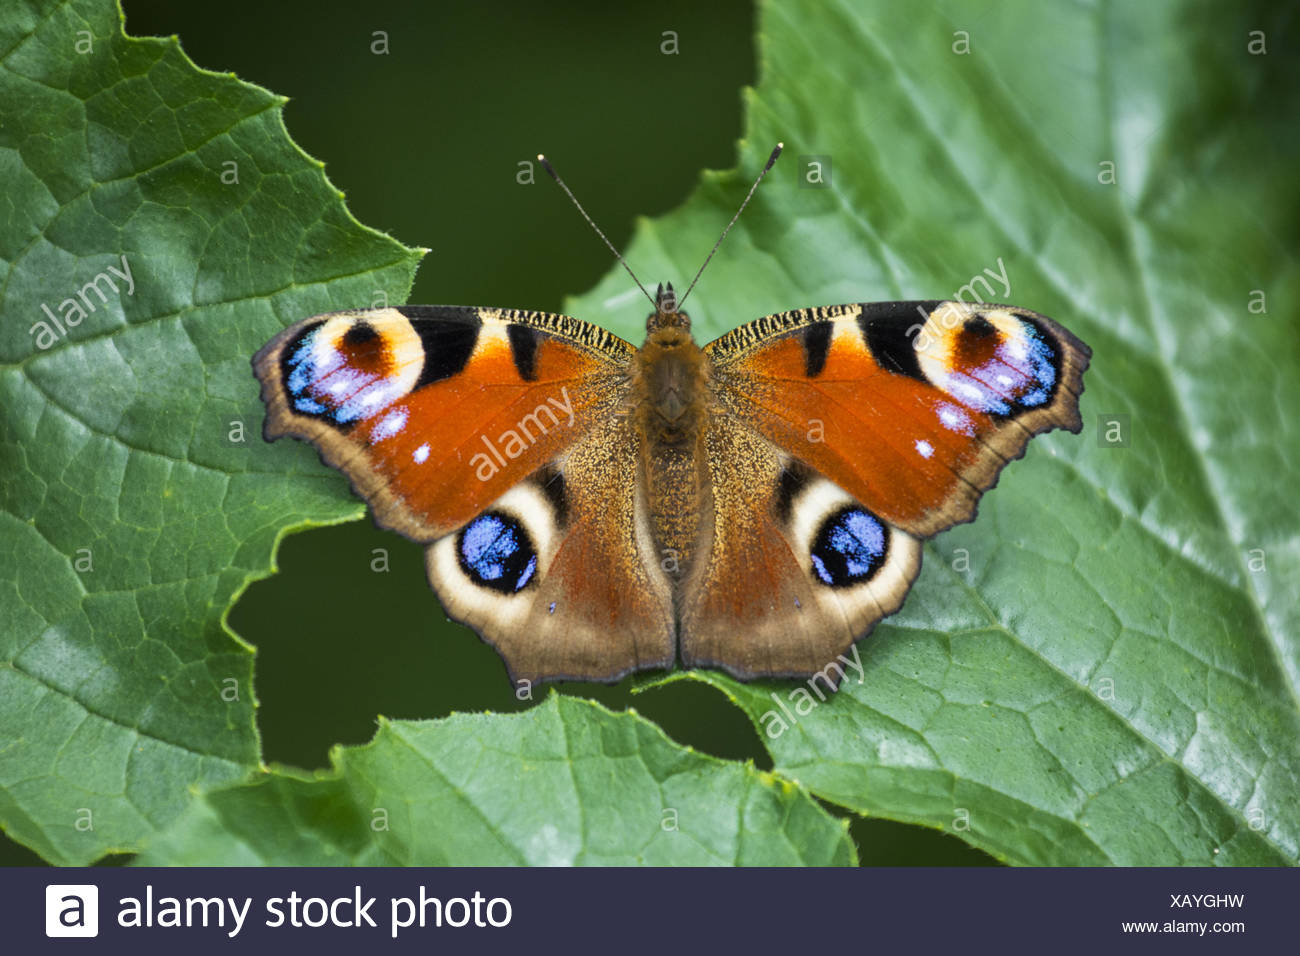 Butterfly, Peacock - Stock Image